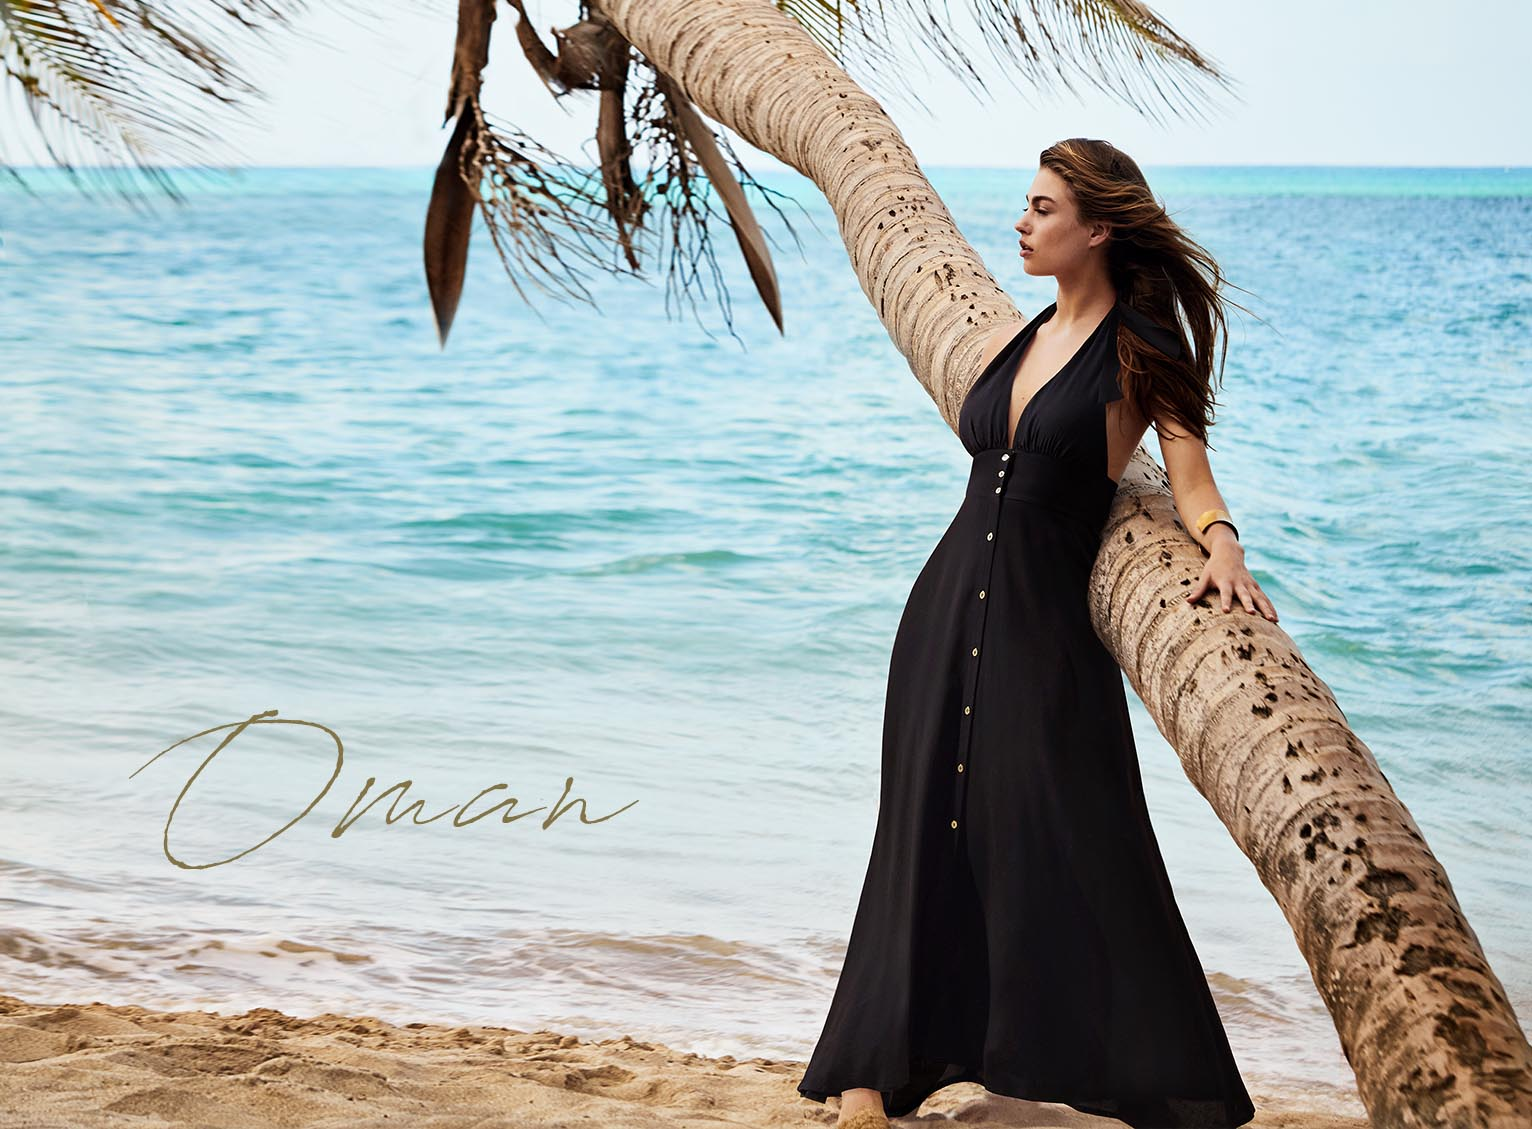 Oman Halterneck Maxi Dress